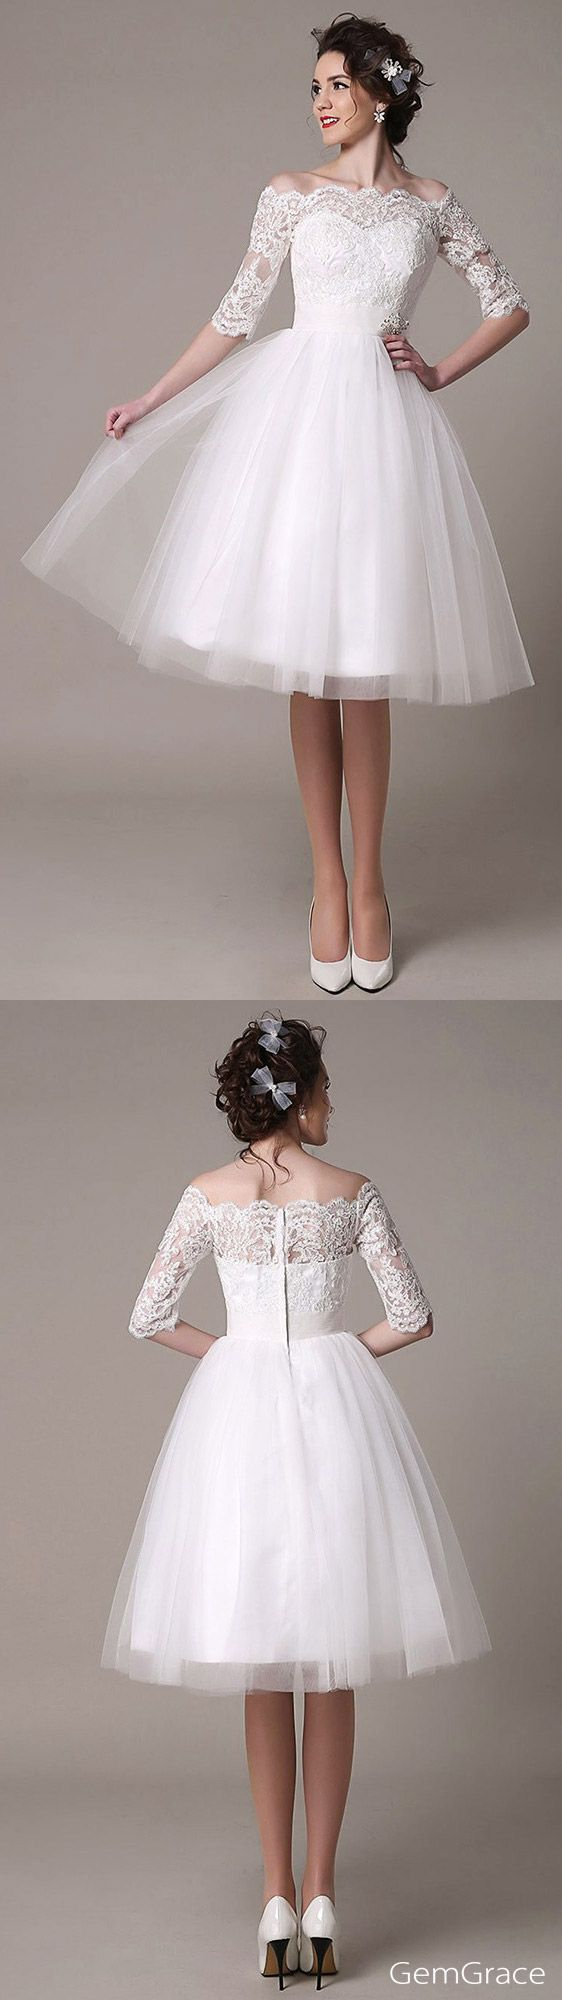 Beautiful Vintage short wedding dress I love Vintage This beautiful knee length wedding dress is